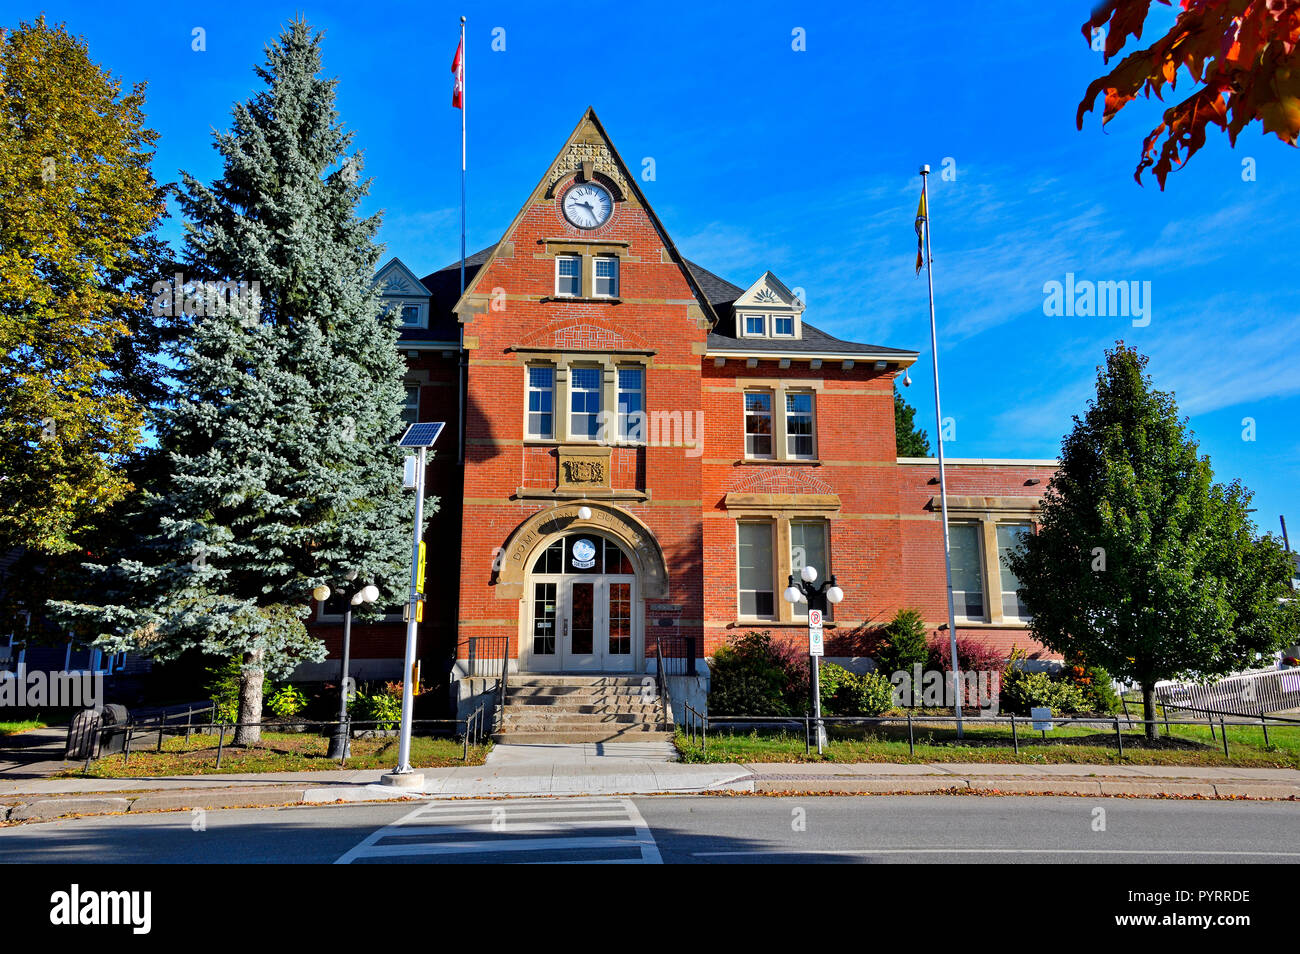 A landscape image of an iconic  brick building situated in the center of the town of Sussex that was built in 1883 and now used as the town hall - Stock Image